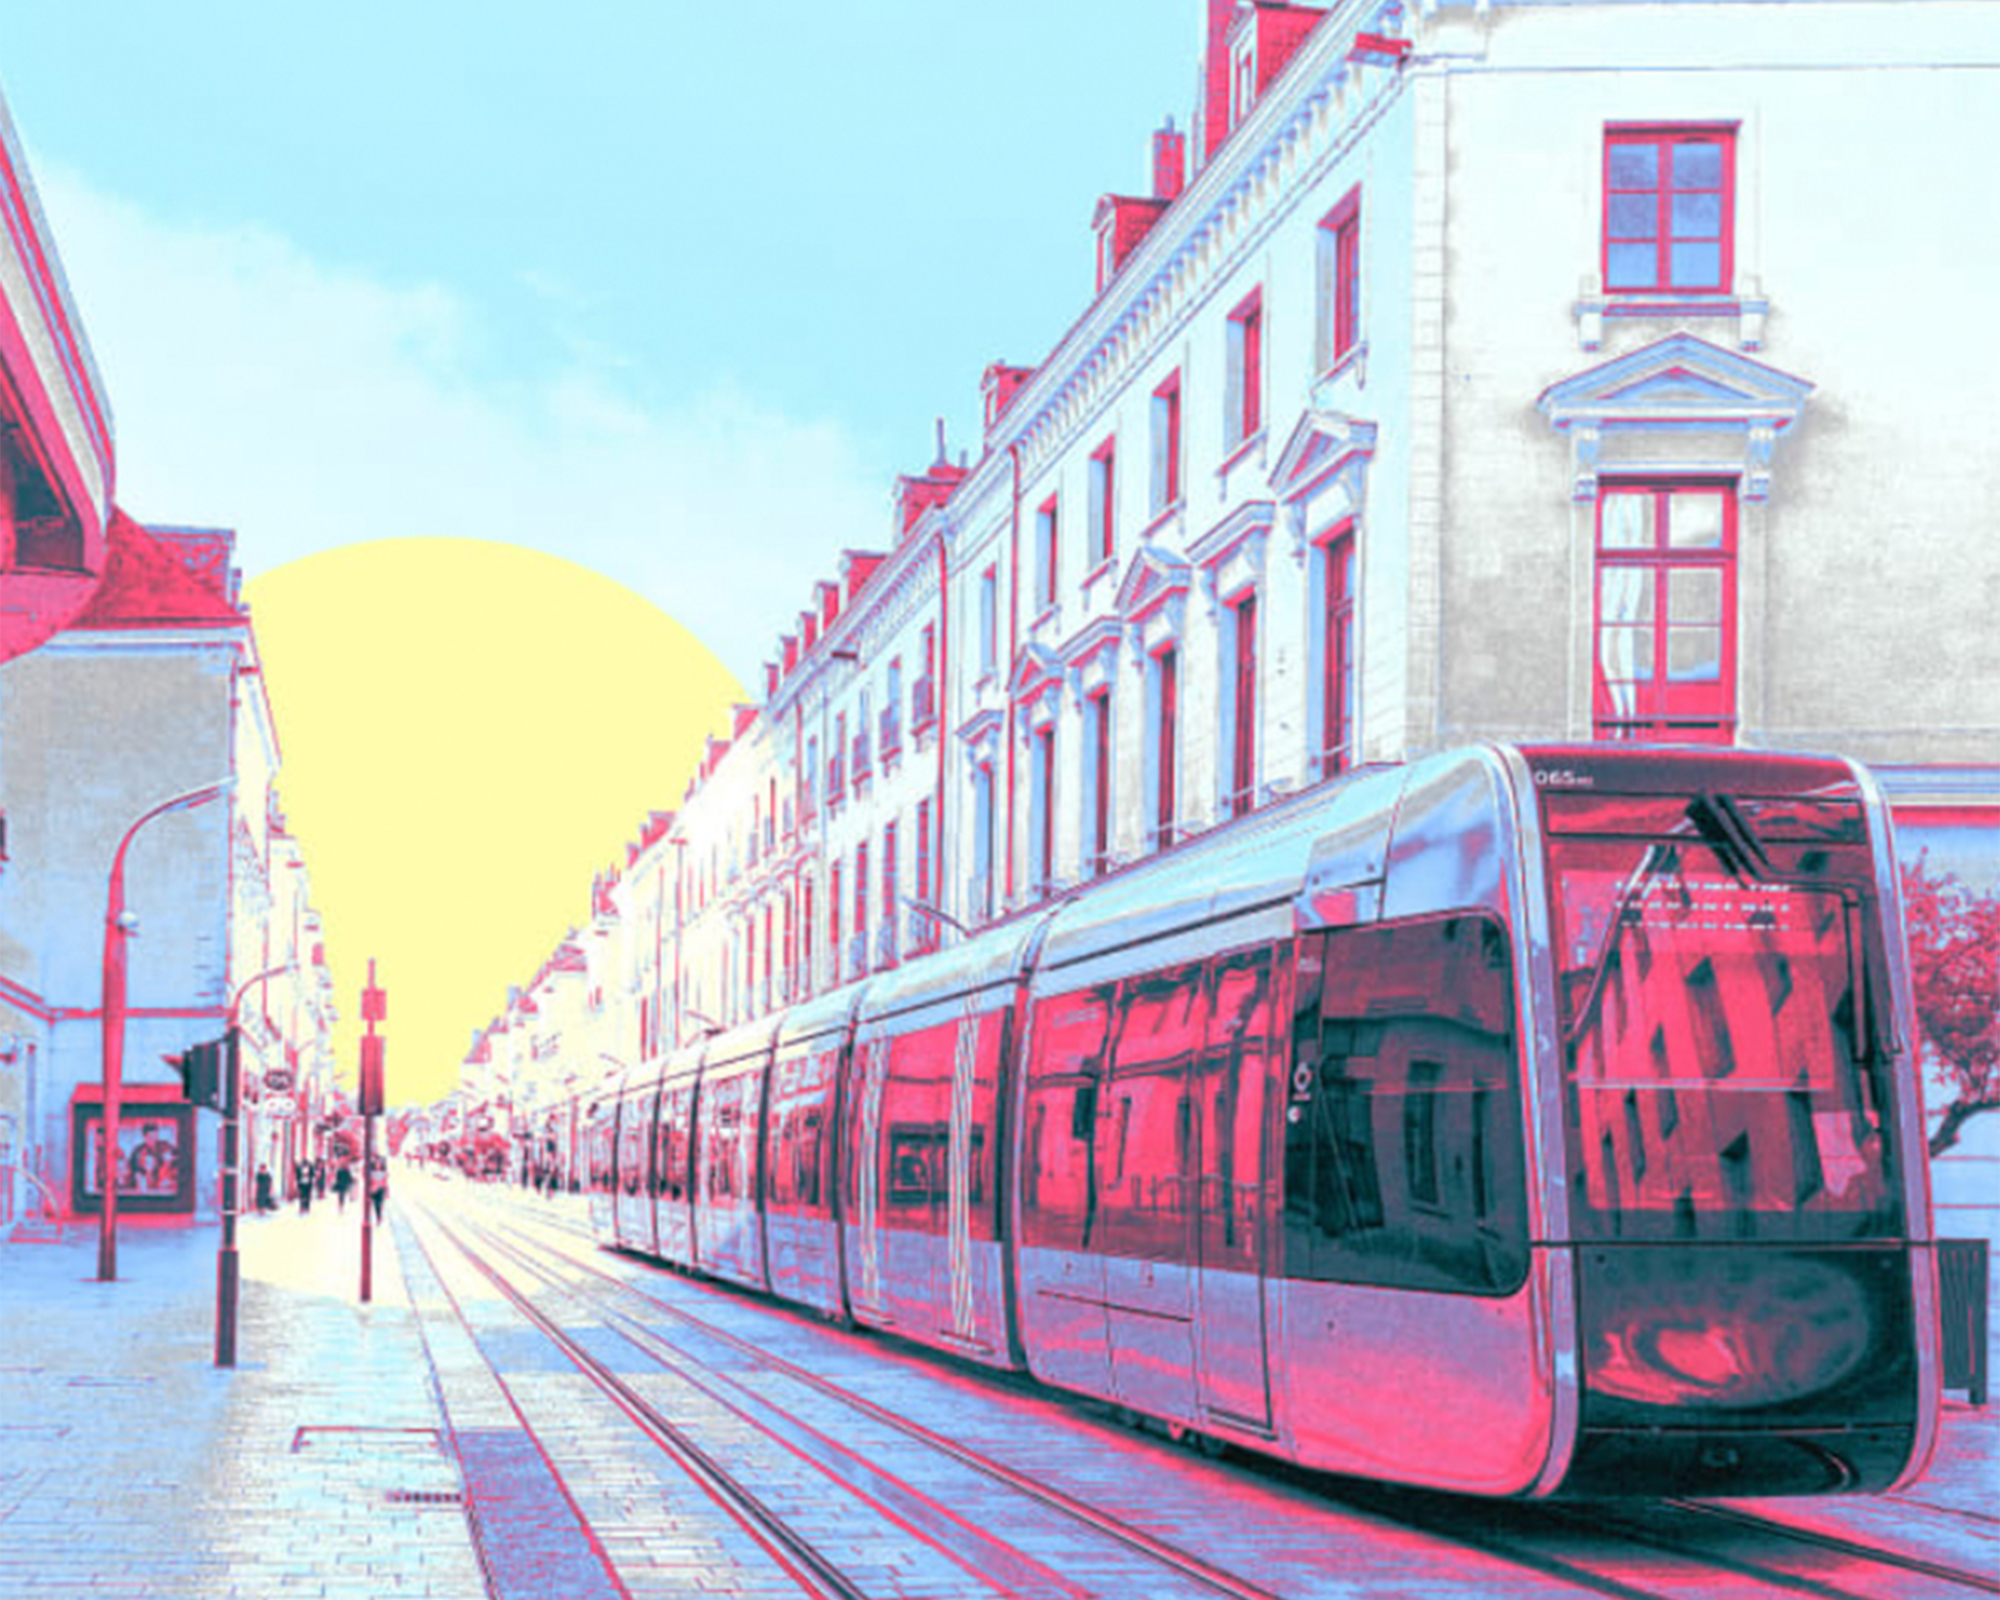 rendering of a streetcar in a city